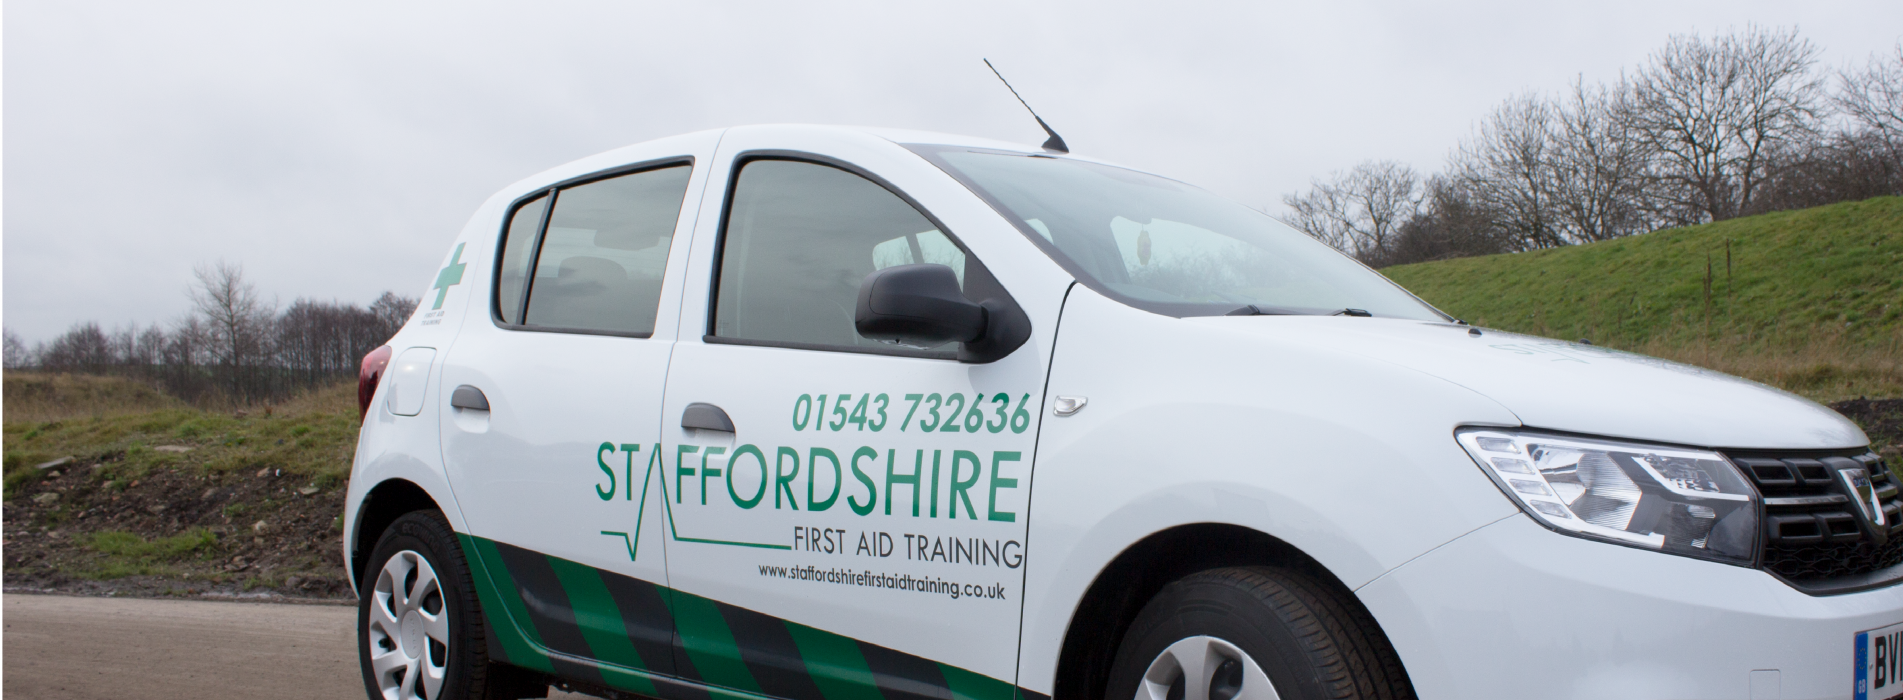 shipston-on-stour first aid training